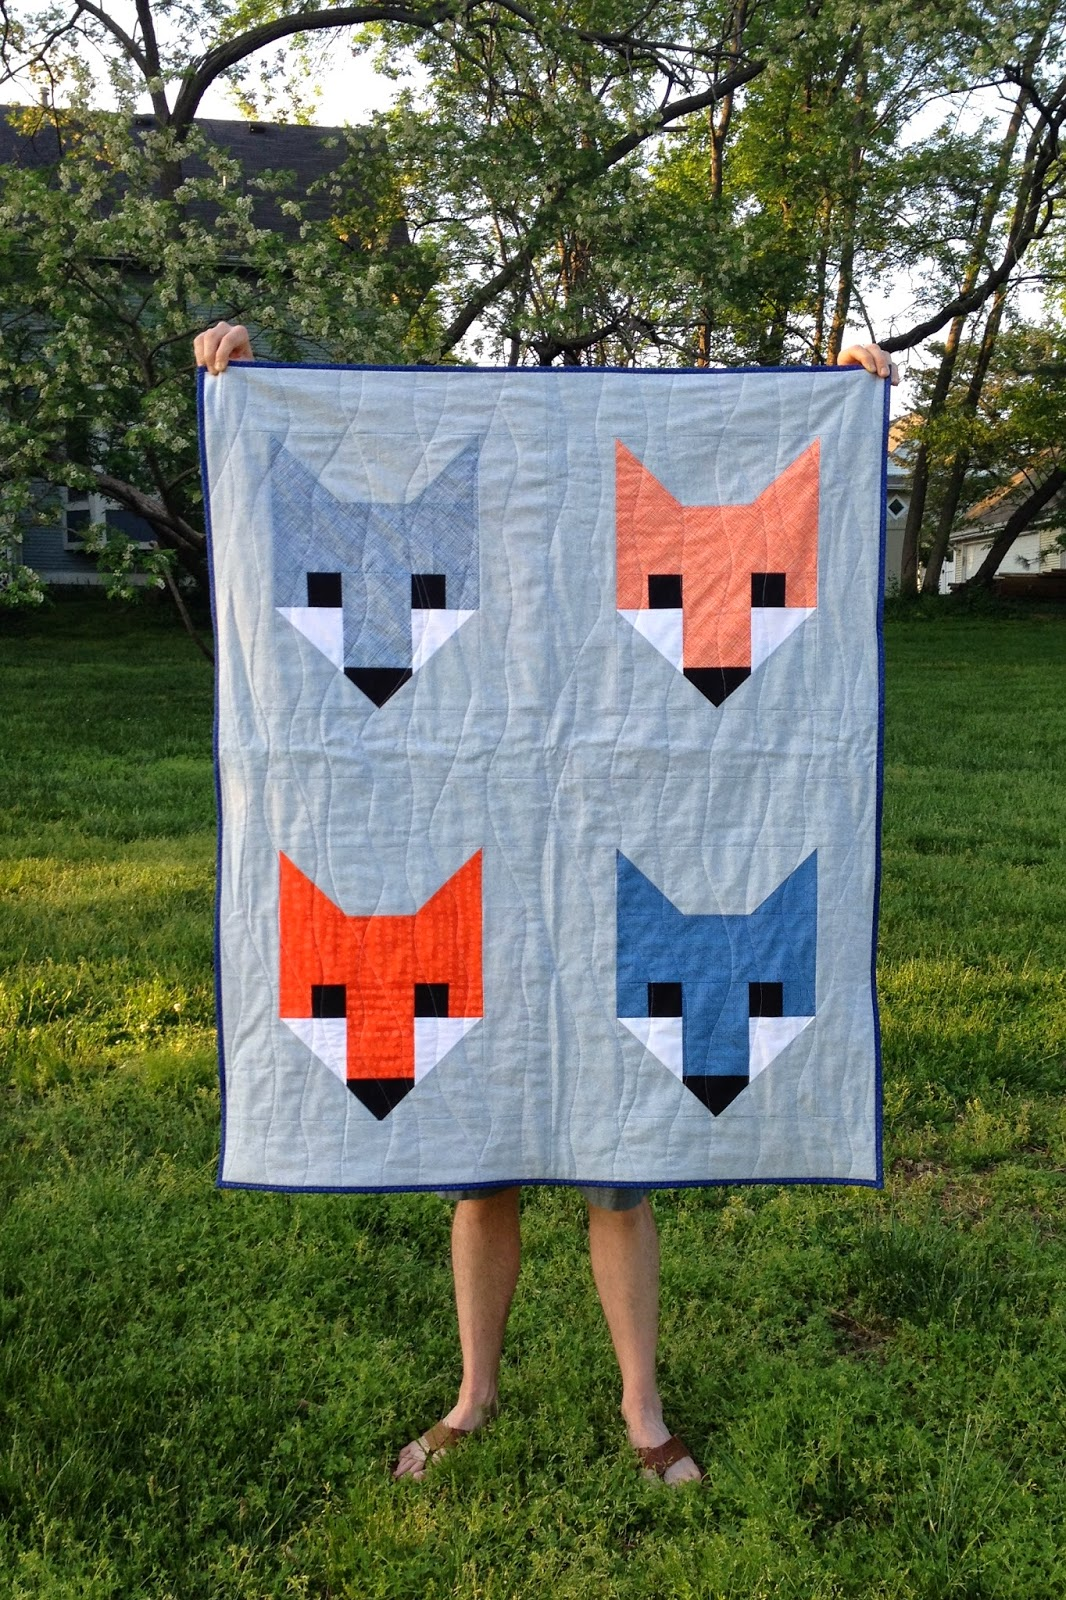 http://ablueskykindoflife.blogspot.com/2015/05/fancy-fox-quilt-finish.html